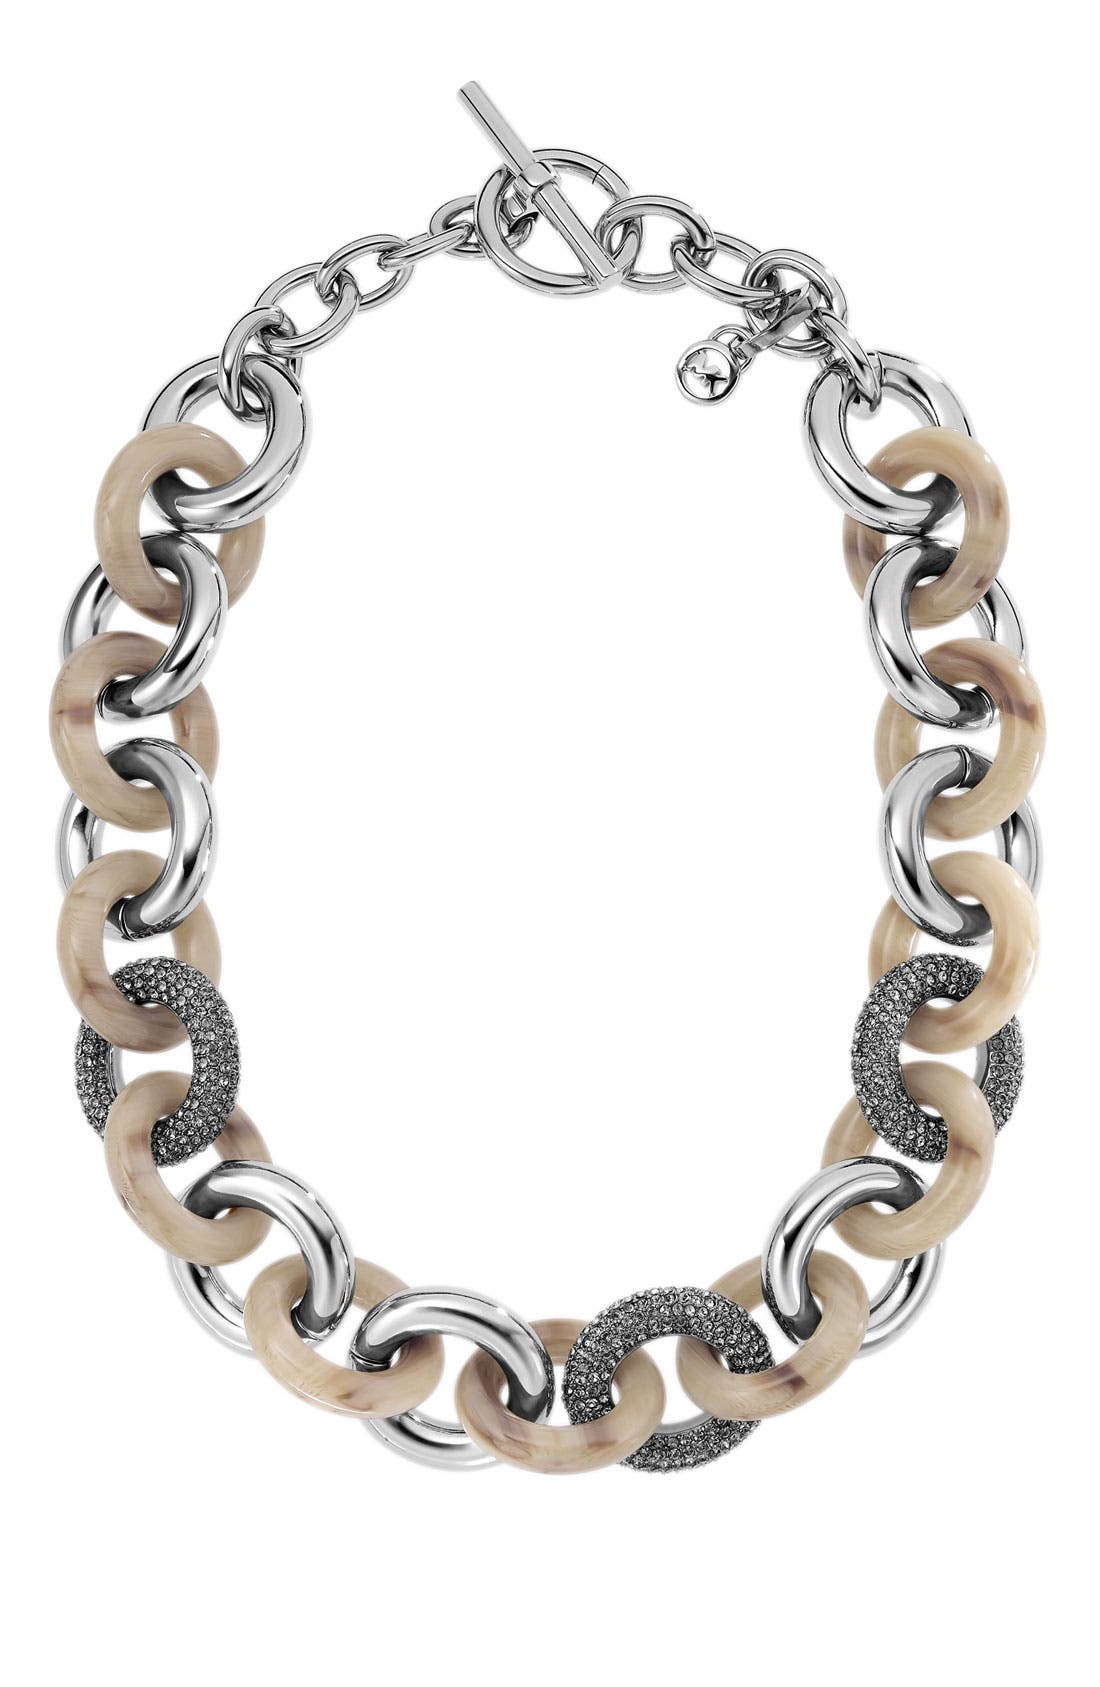 Alternate Image 1 Selected - Michael Kors 'Safari Glam' Open Link Necklace